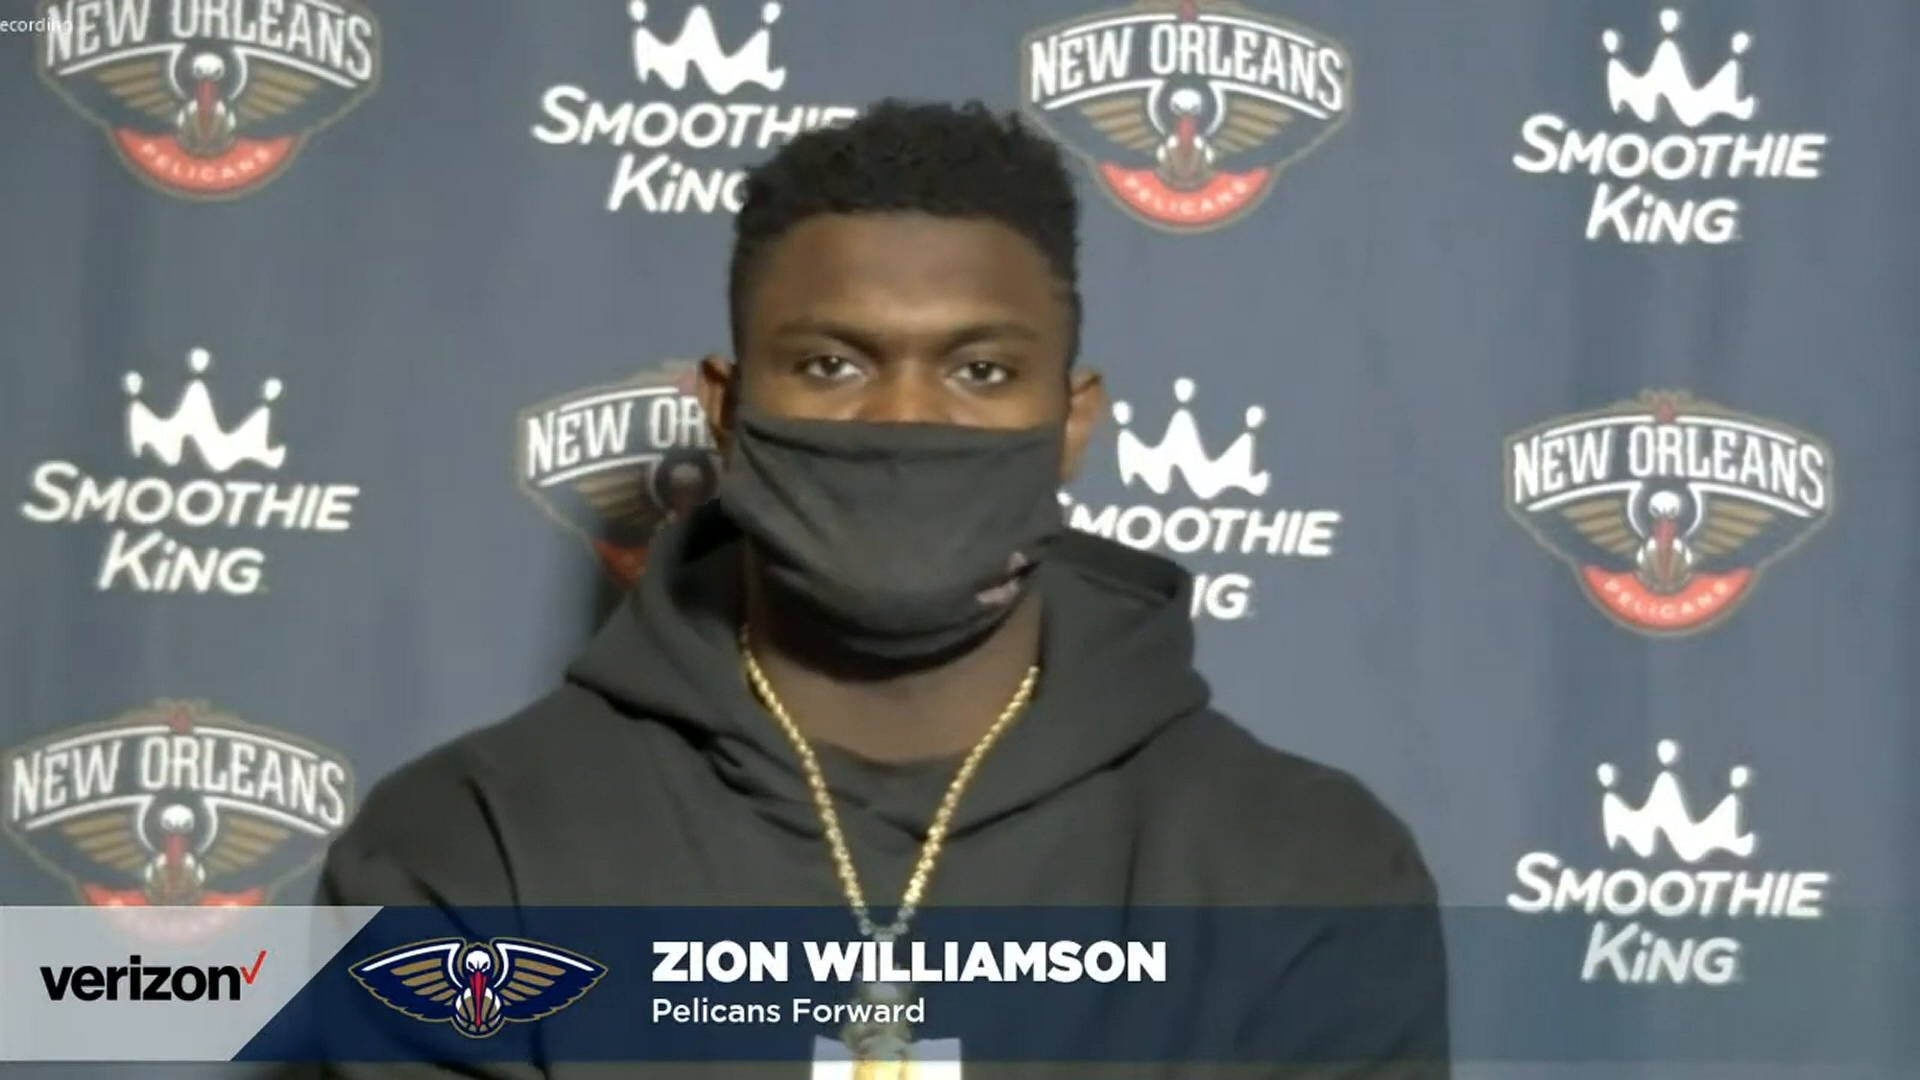 Pelicans-Kings Postgame Interview: Zion Williamson 1-7-21